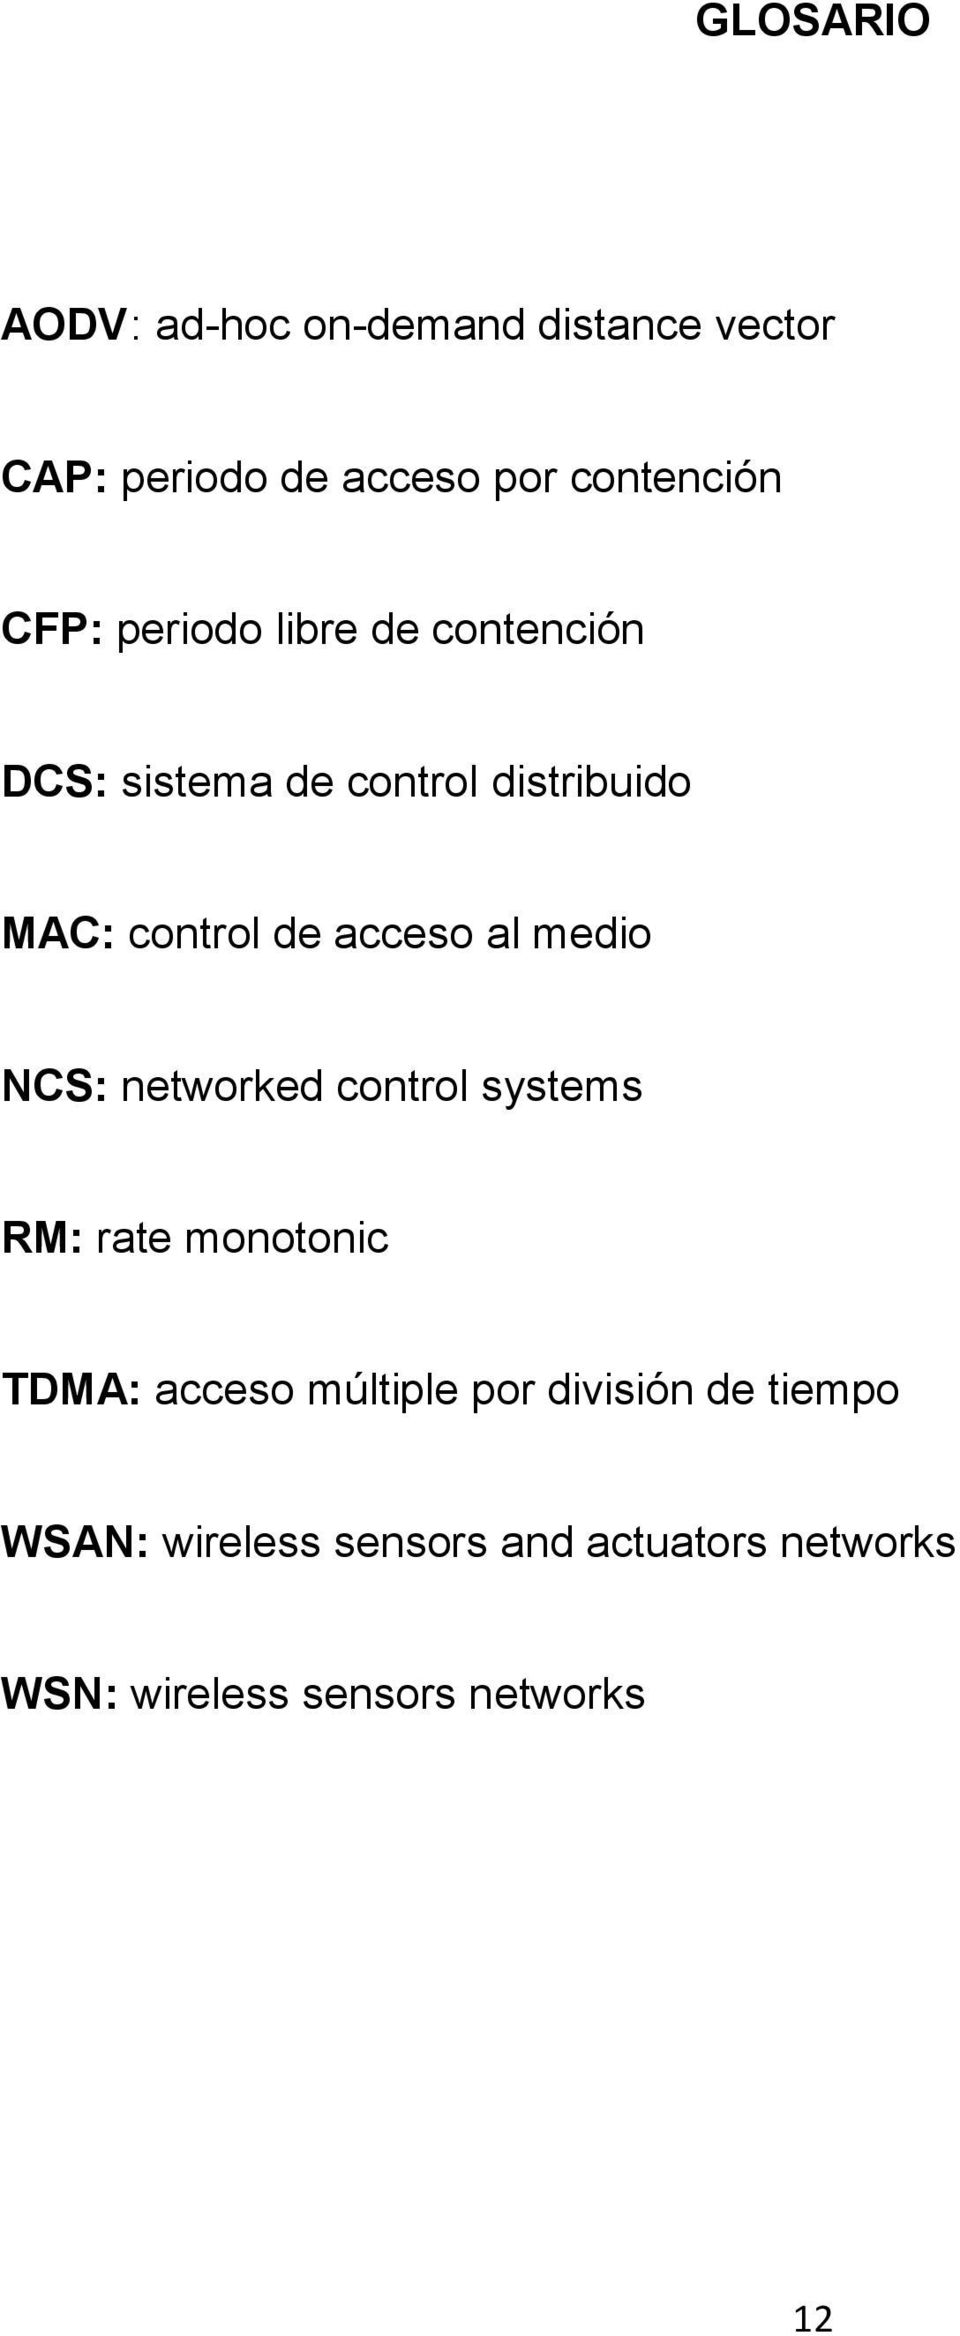 acceso al medio NCS: networked control systems RM: rate monotonic TDMA: acceso múltiple